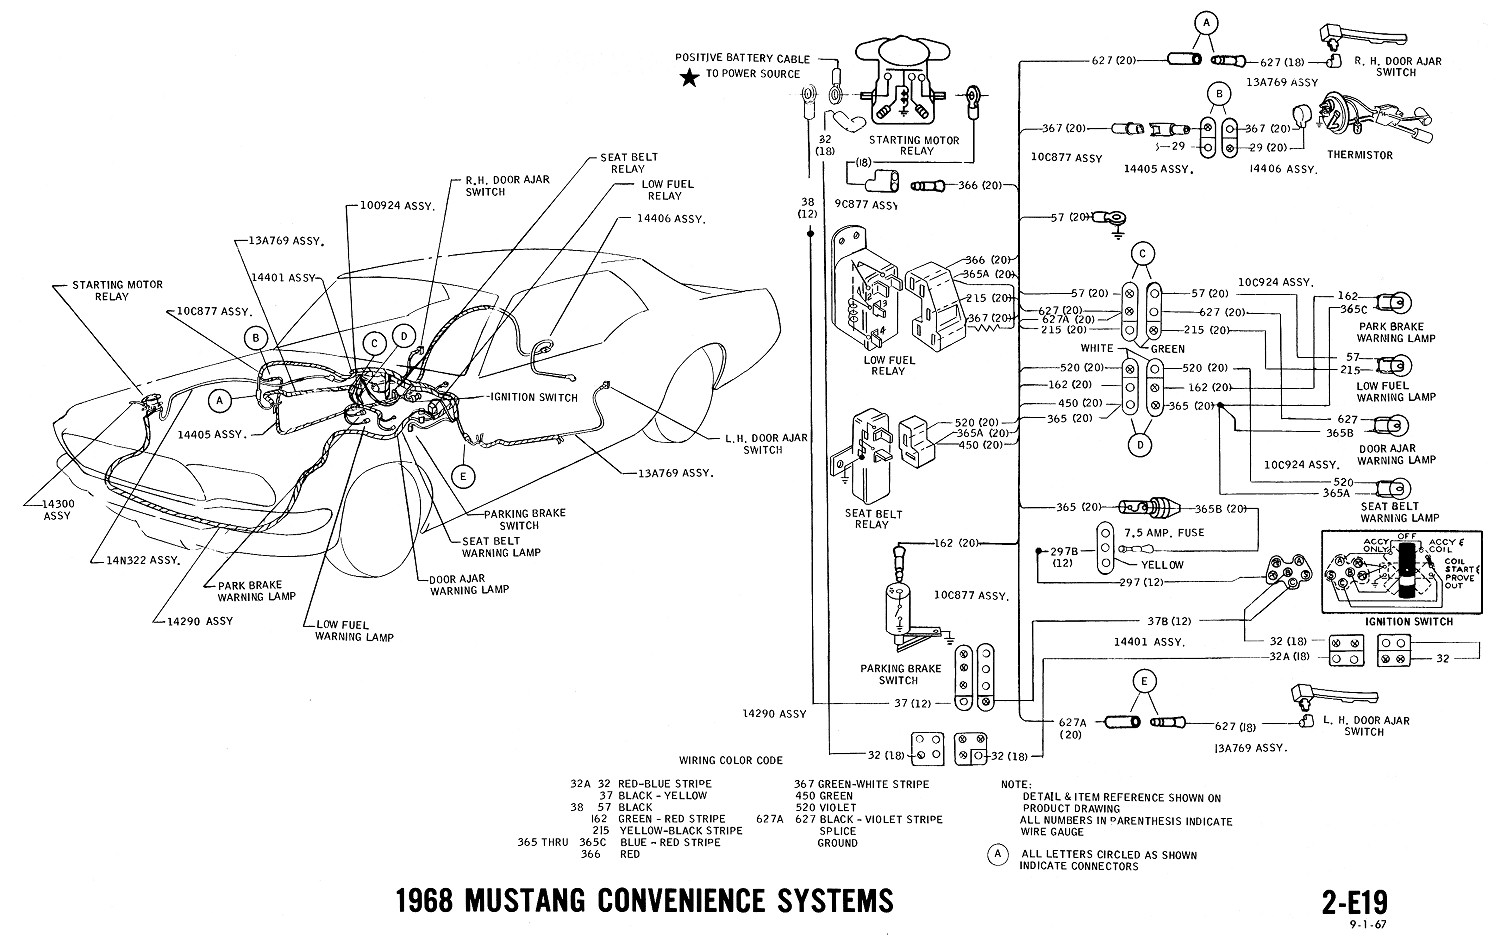 E19 1968 mustang wiring diagrams evolving software 1970 mustang wiring diagram pdf at bakdesigns.co